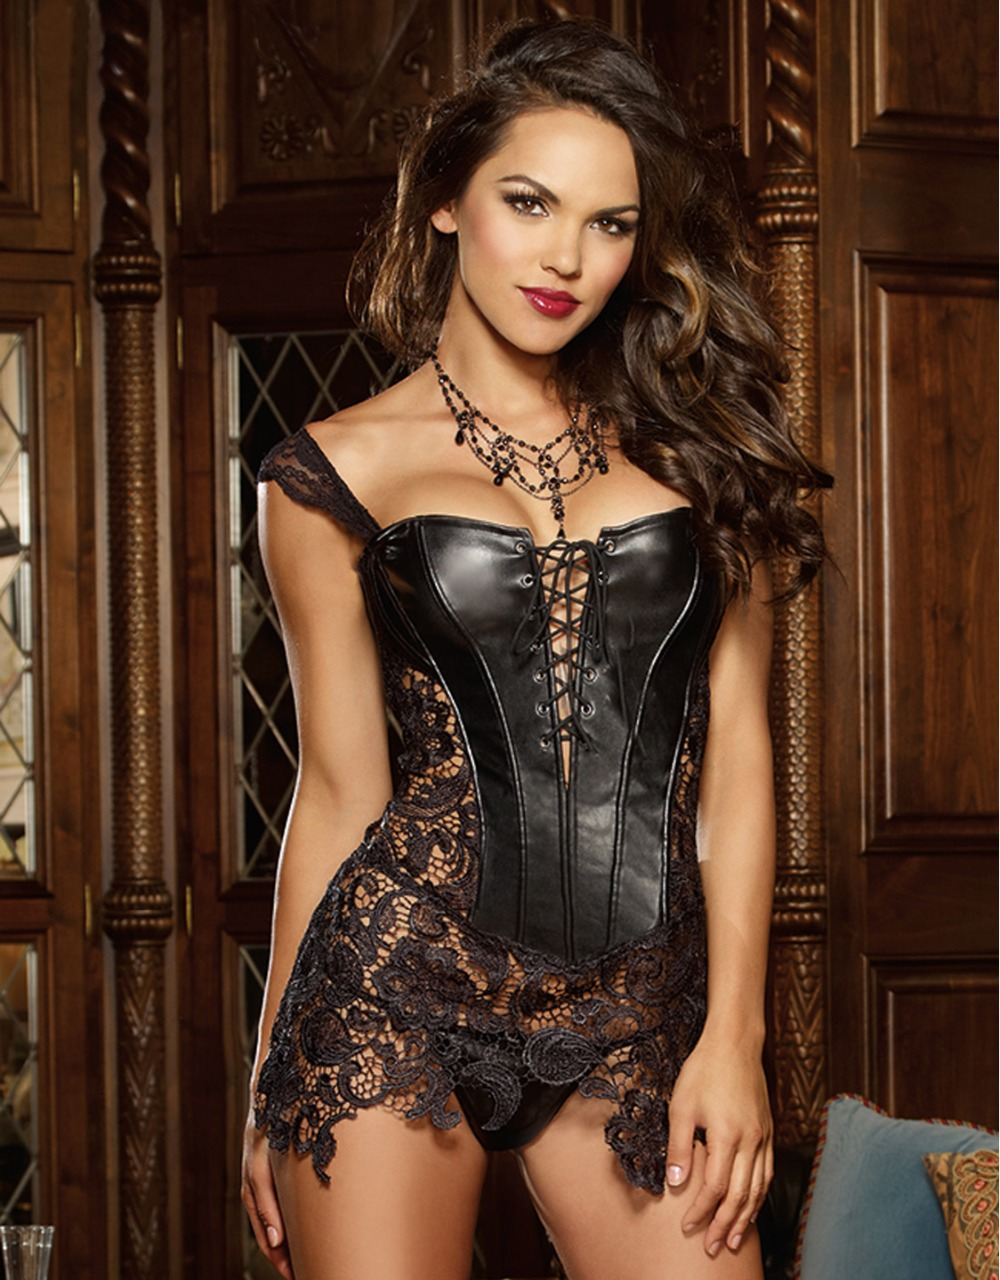 Faux Leather S 5XL Sexy Corset For Women Black Red 5XL Lace Zipper Overbust  Corsets Top Plus Size Gothic Foral Corset Bustier-in Bustiers   Corsets  from ... 5f3aa38a1